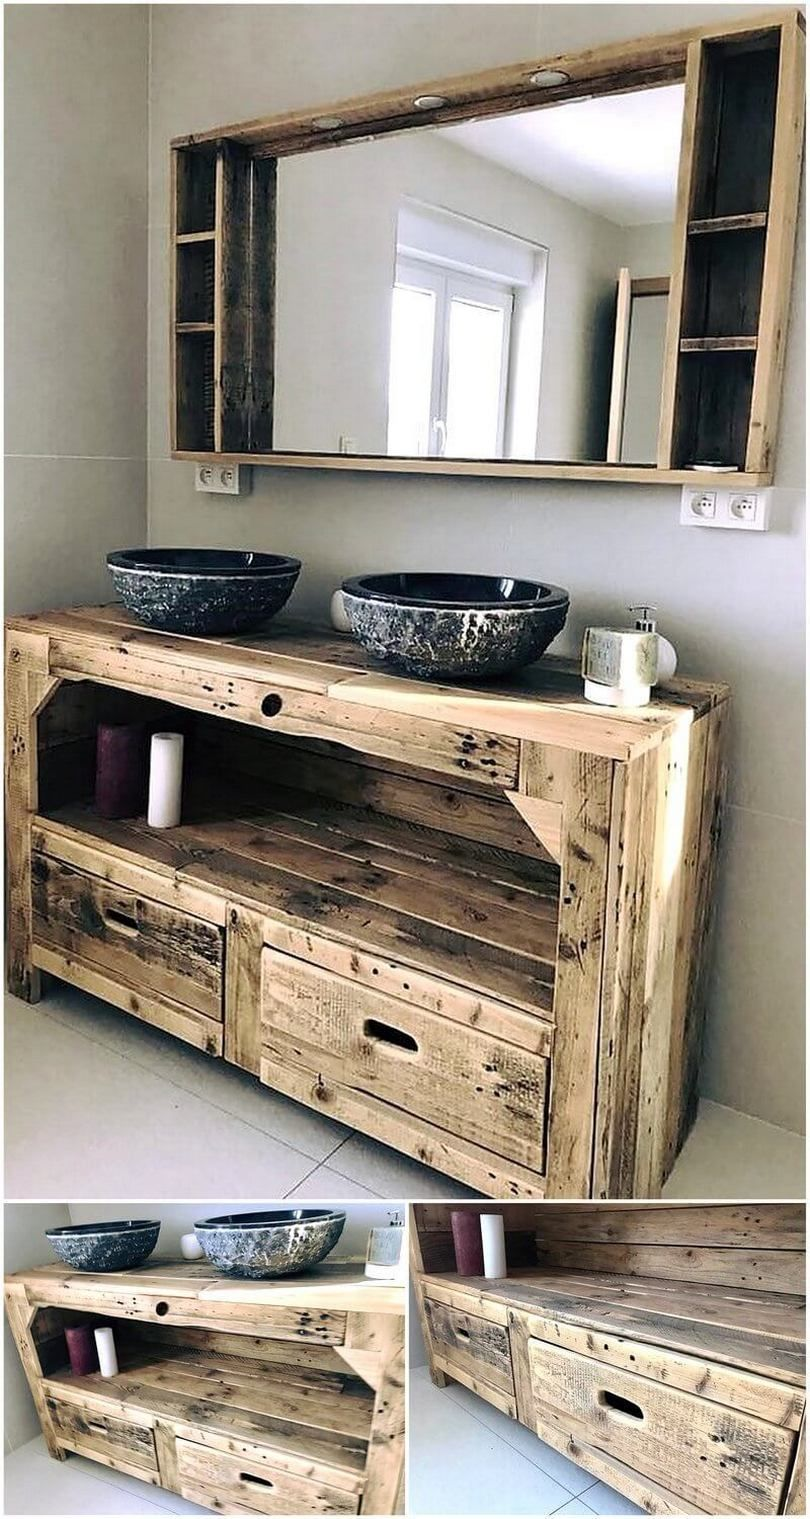 Rustic Creations Out Of Used Wood Pallets Creations Diyhomedecorwoodpallets Pallets Rus Idee Salle De Bain Deco Salle De Bain Bois Idees Salle De Bain